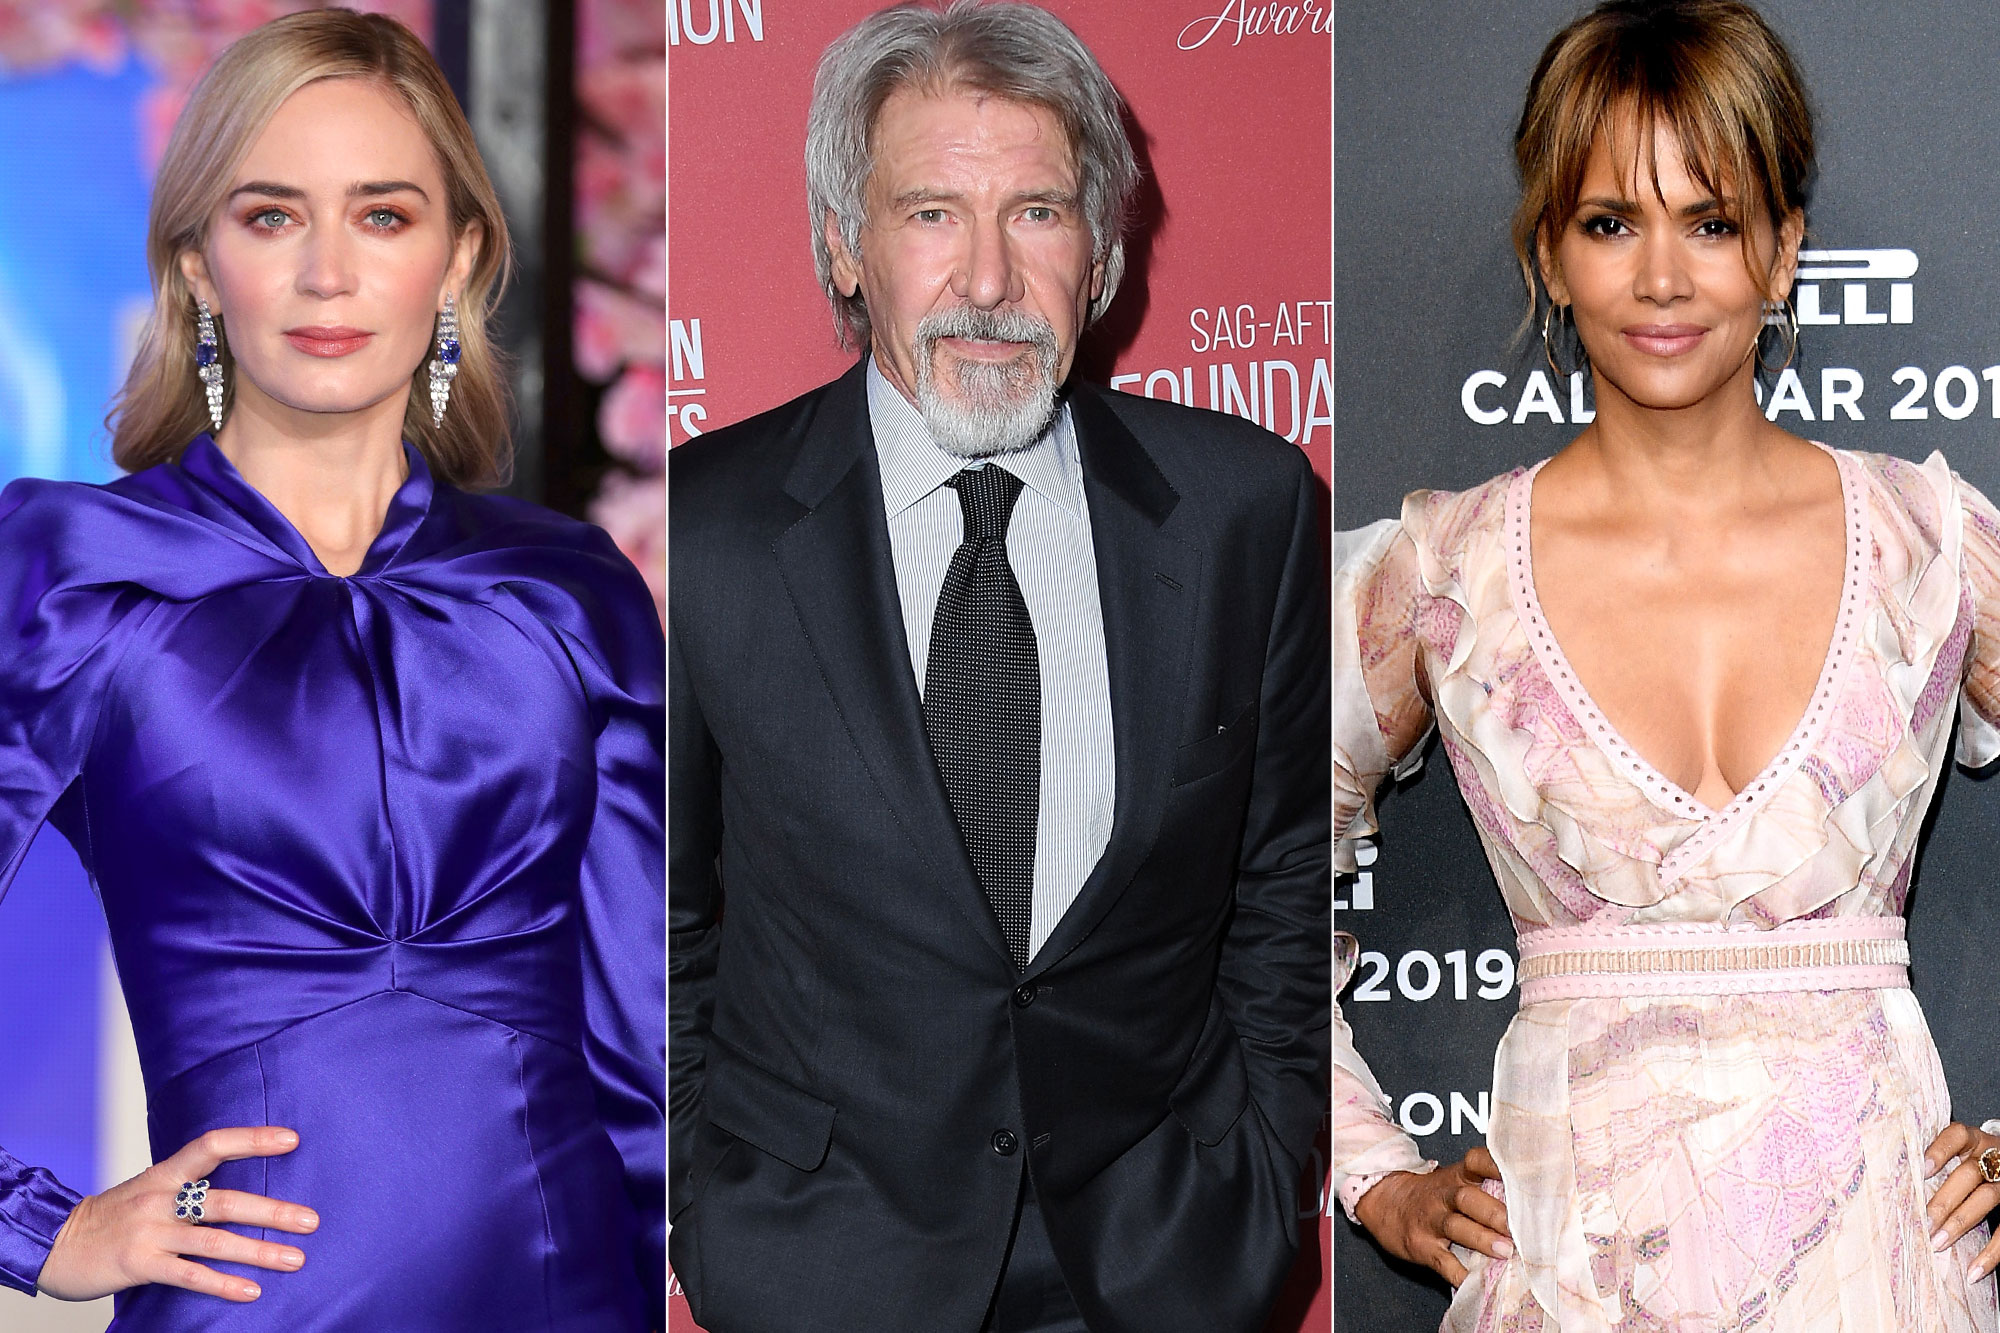 Golden Globes: Emily Blunt, Harrison Ford and Halle Berry Announced as Presenters at 2019 Show